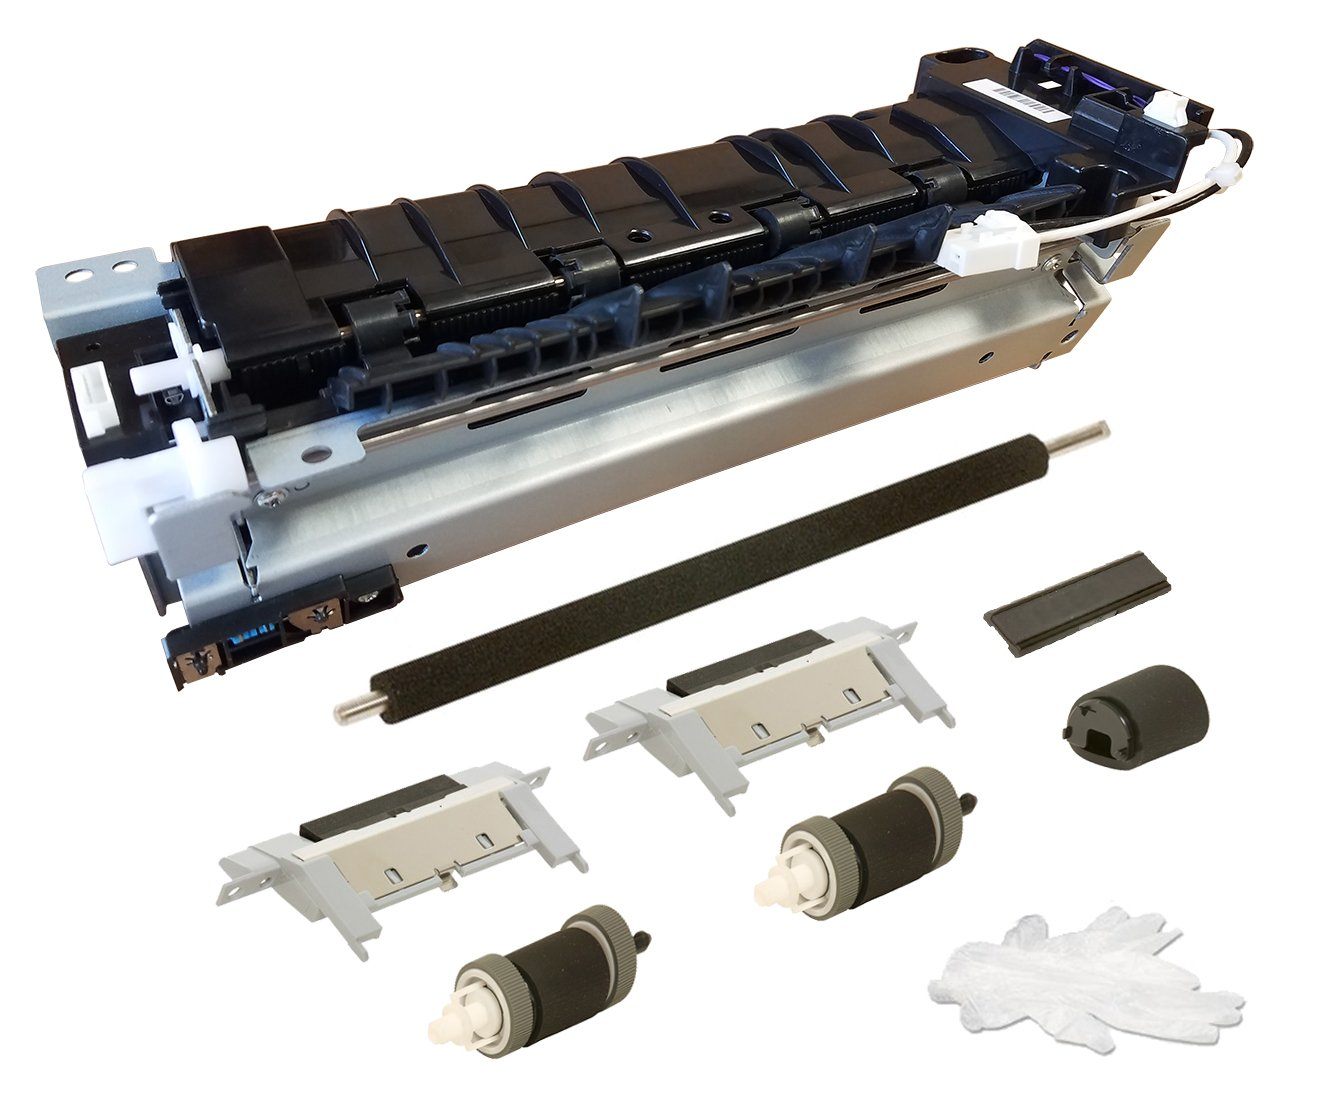 Altru Print CE525-67901-DLX-AP Deluxe Maintenance Kit for HP Laserjet P3015 (110V) Includes RM1-6274 Fuser, Transfer Roller & Tray 1/2 / 3 Rollers by Altru Print